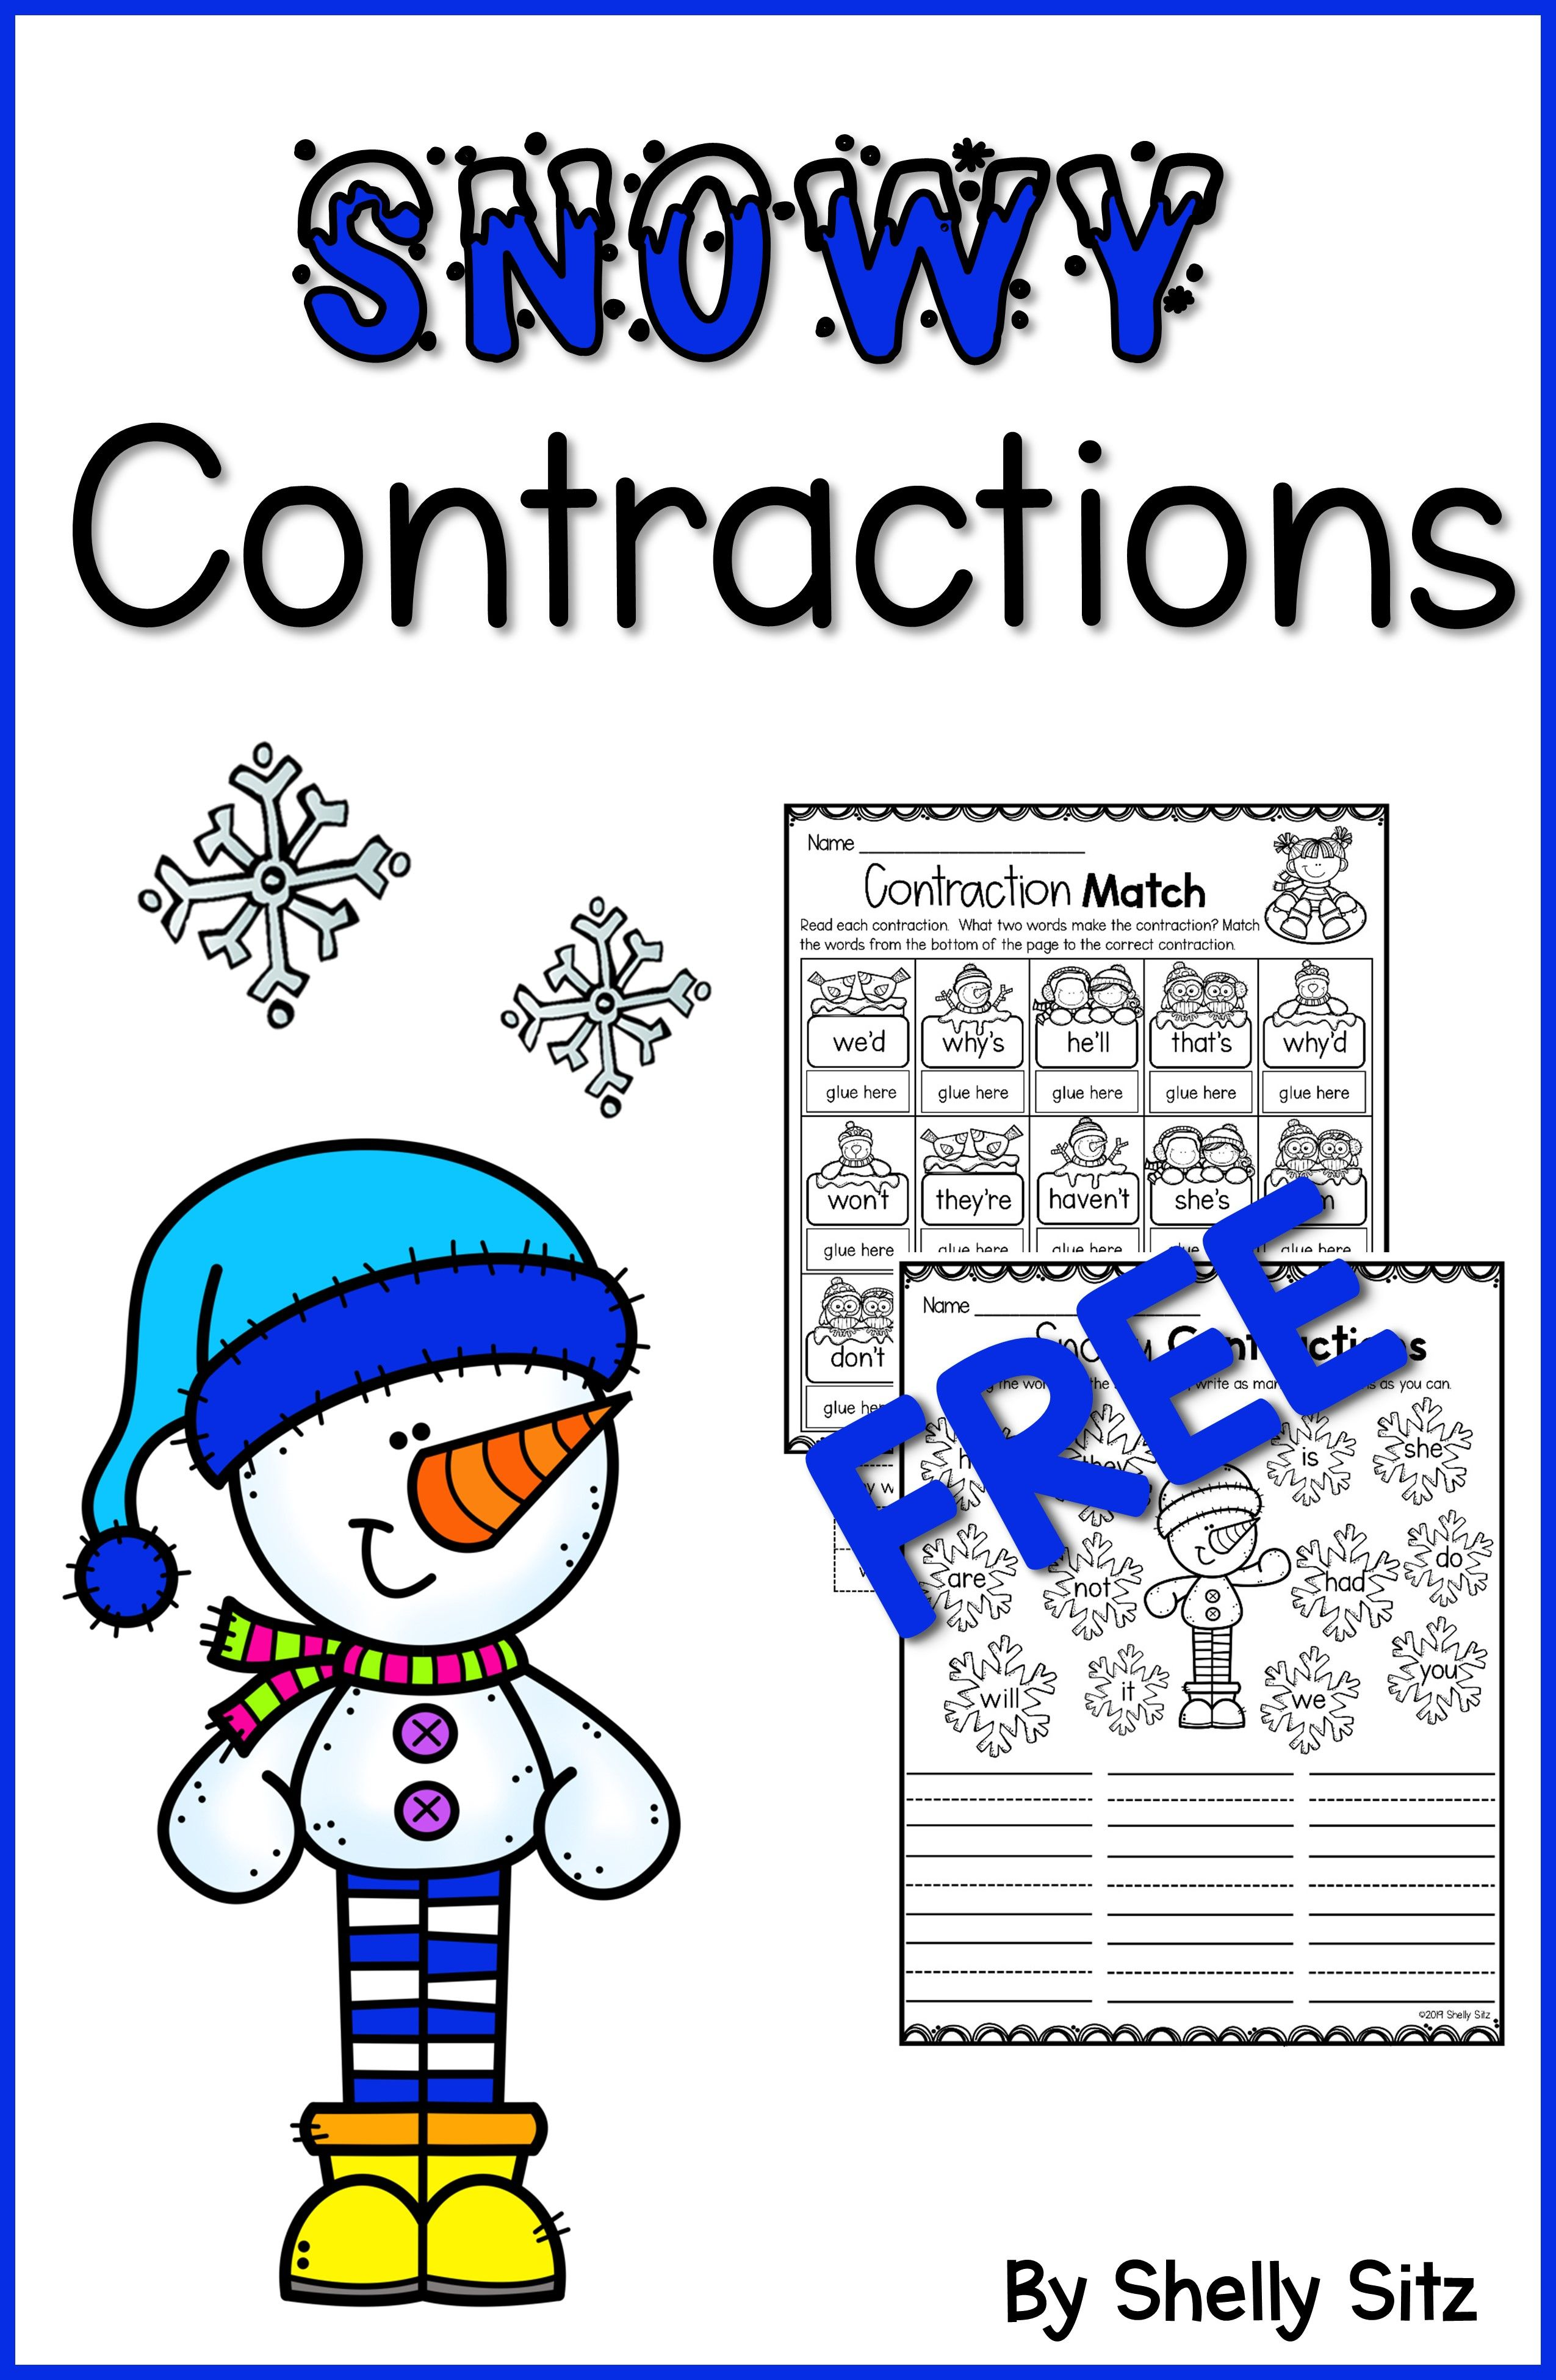 small resolution of Contraction Worksheet   Contraction worksheet